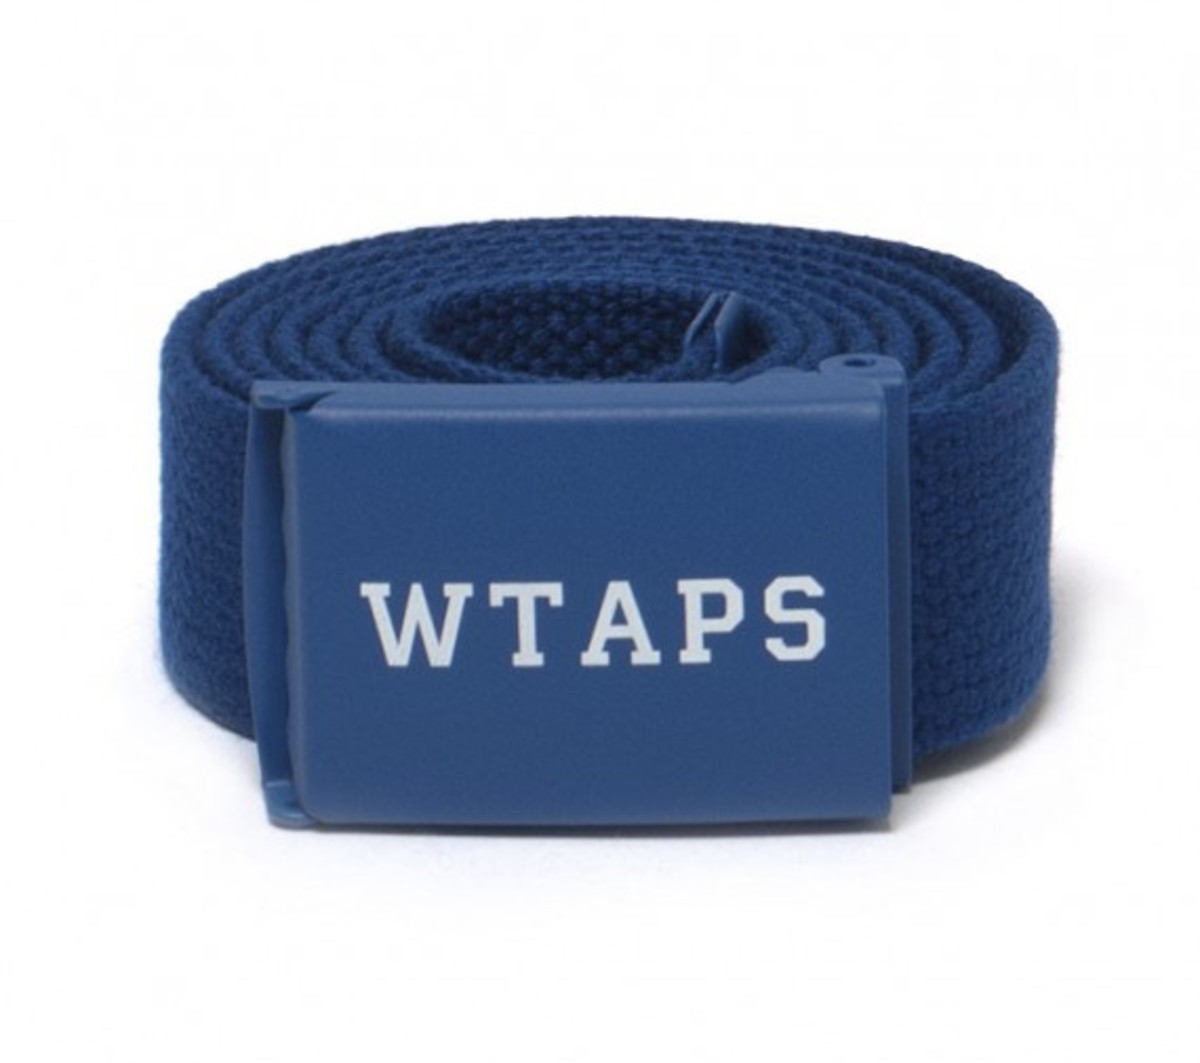 wtaps-spring-summer-2012-august-delivery-10